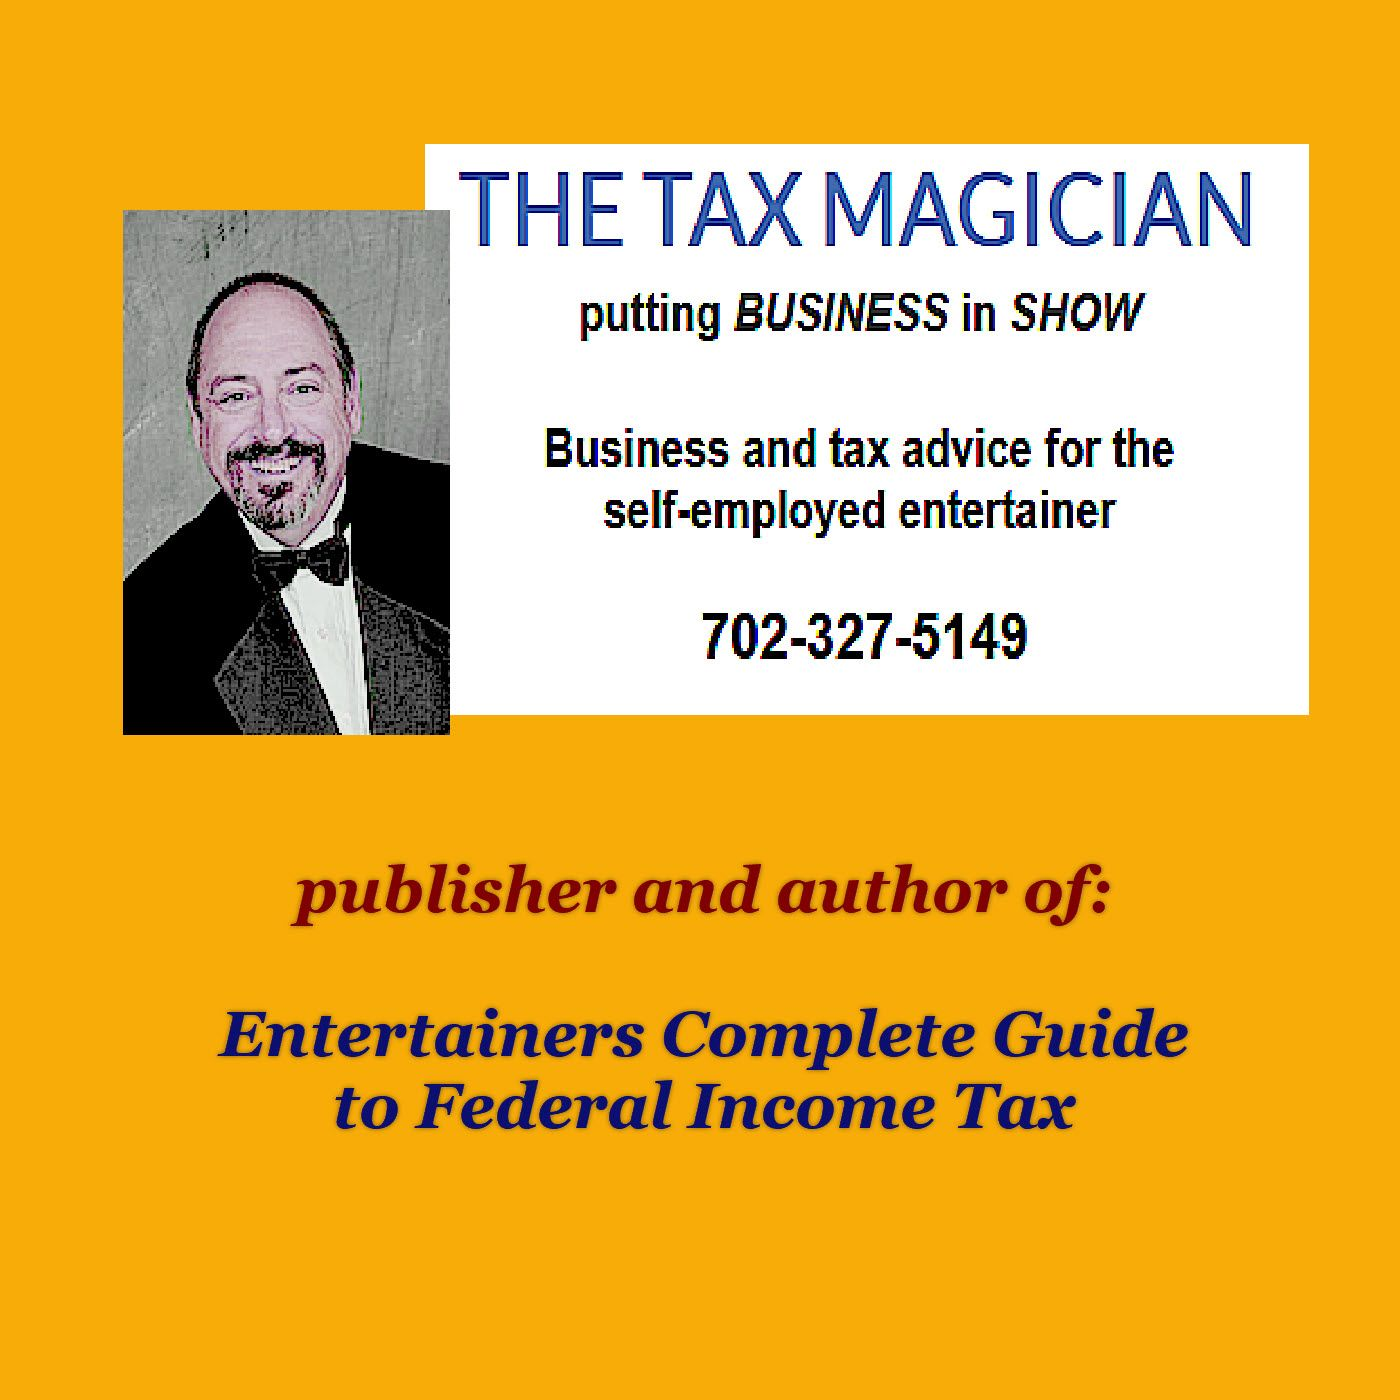 The Tax Magician by Countyfairgrounds